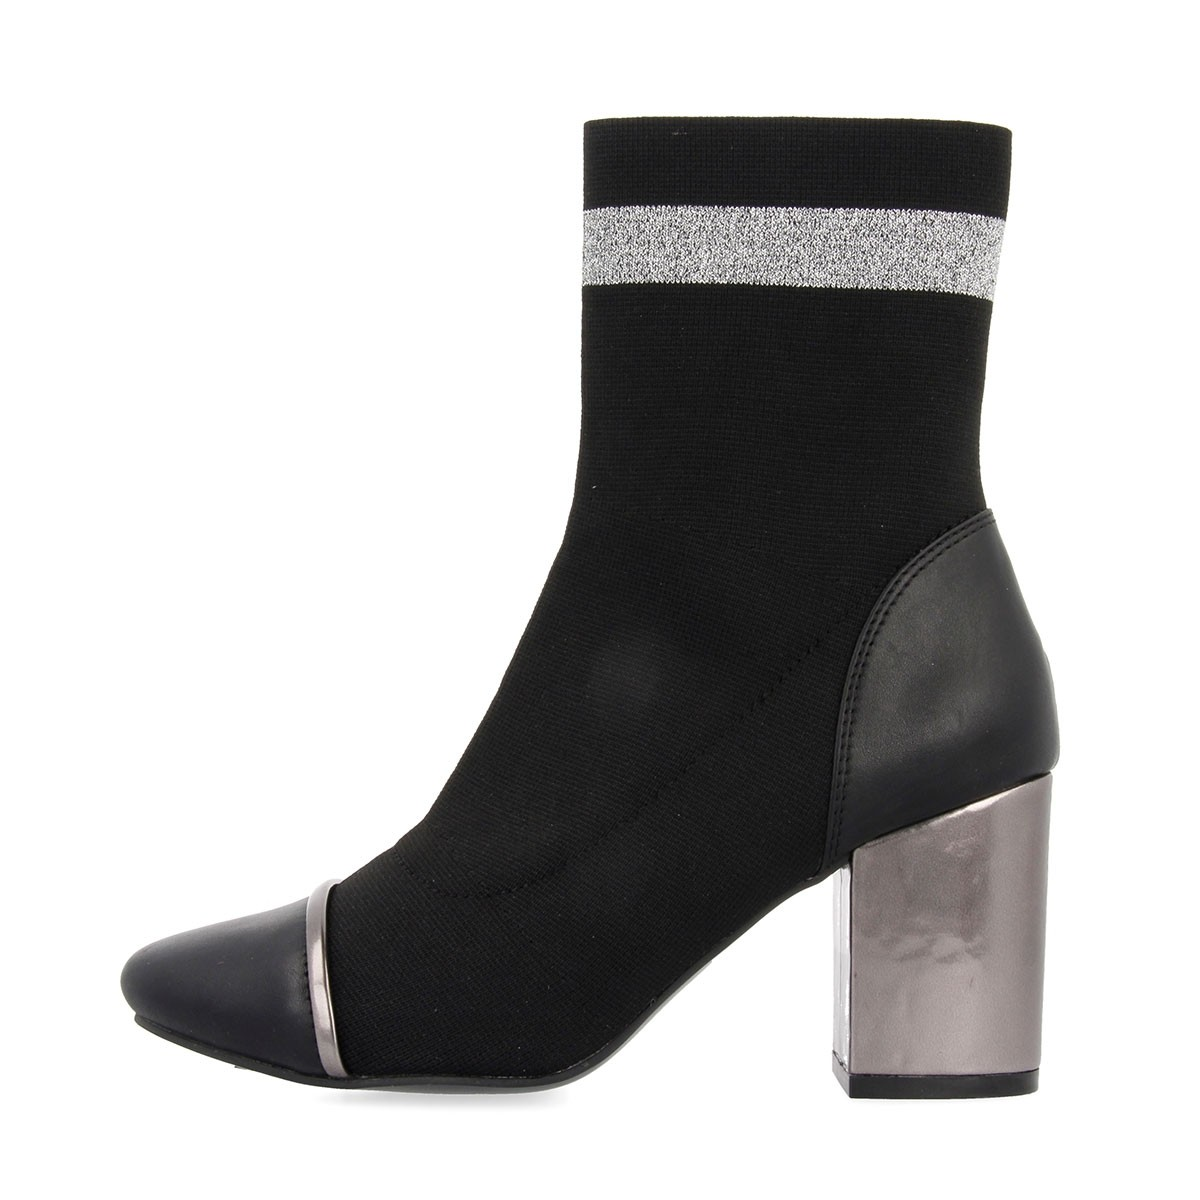 46423 Black-Silver BOOTS 2